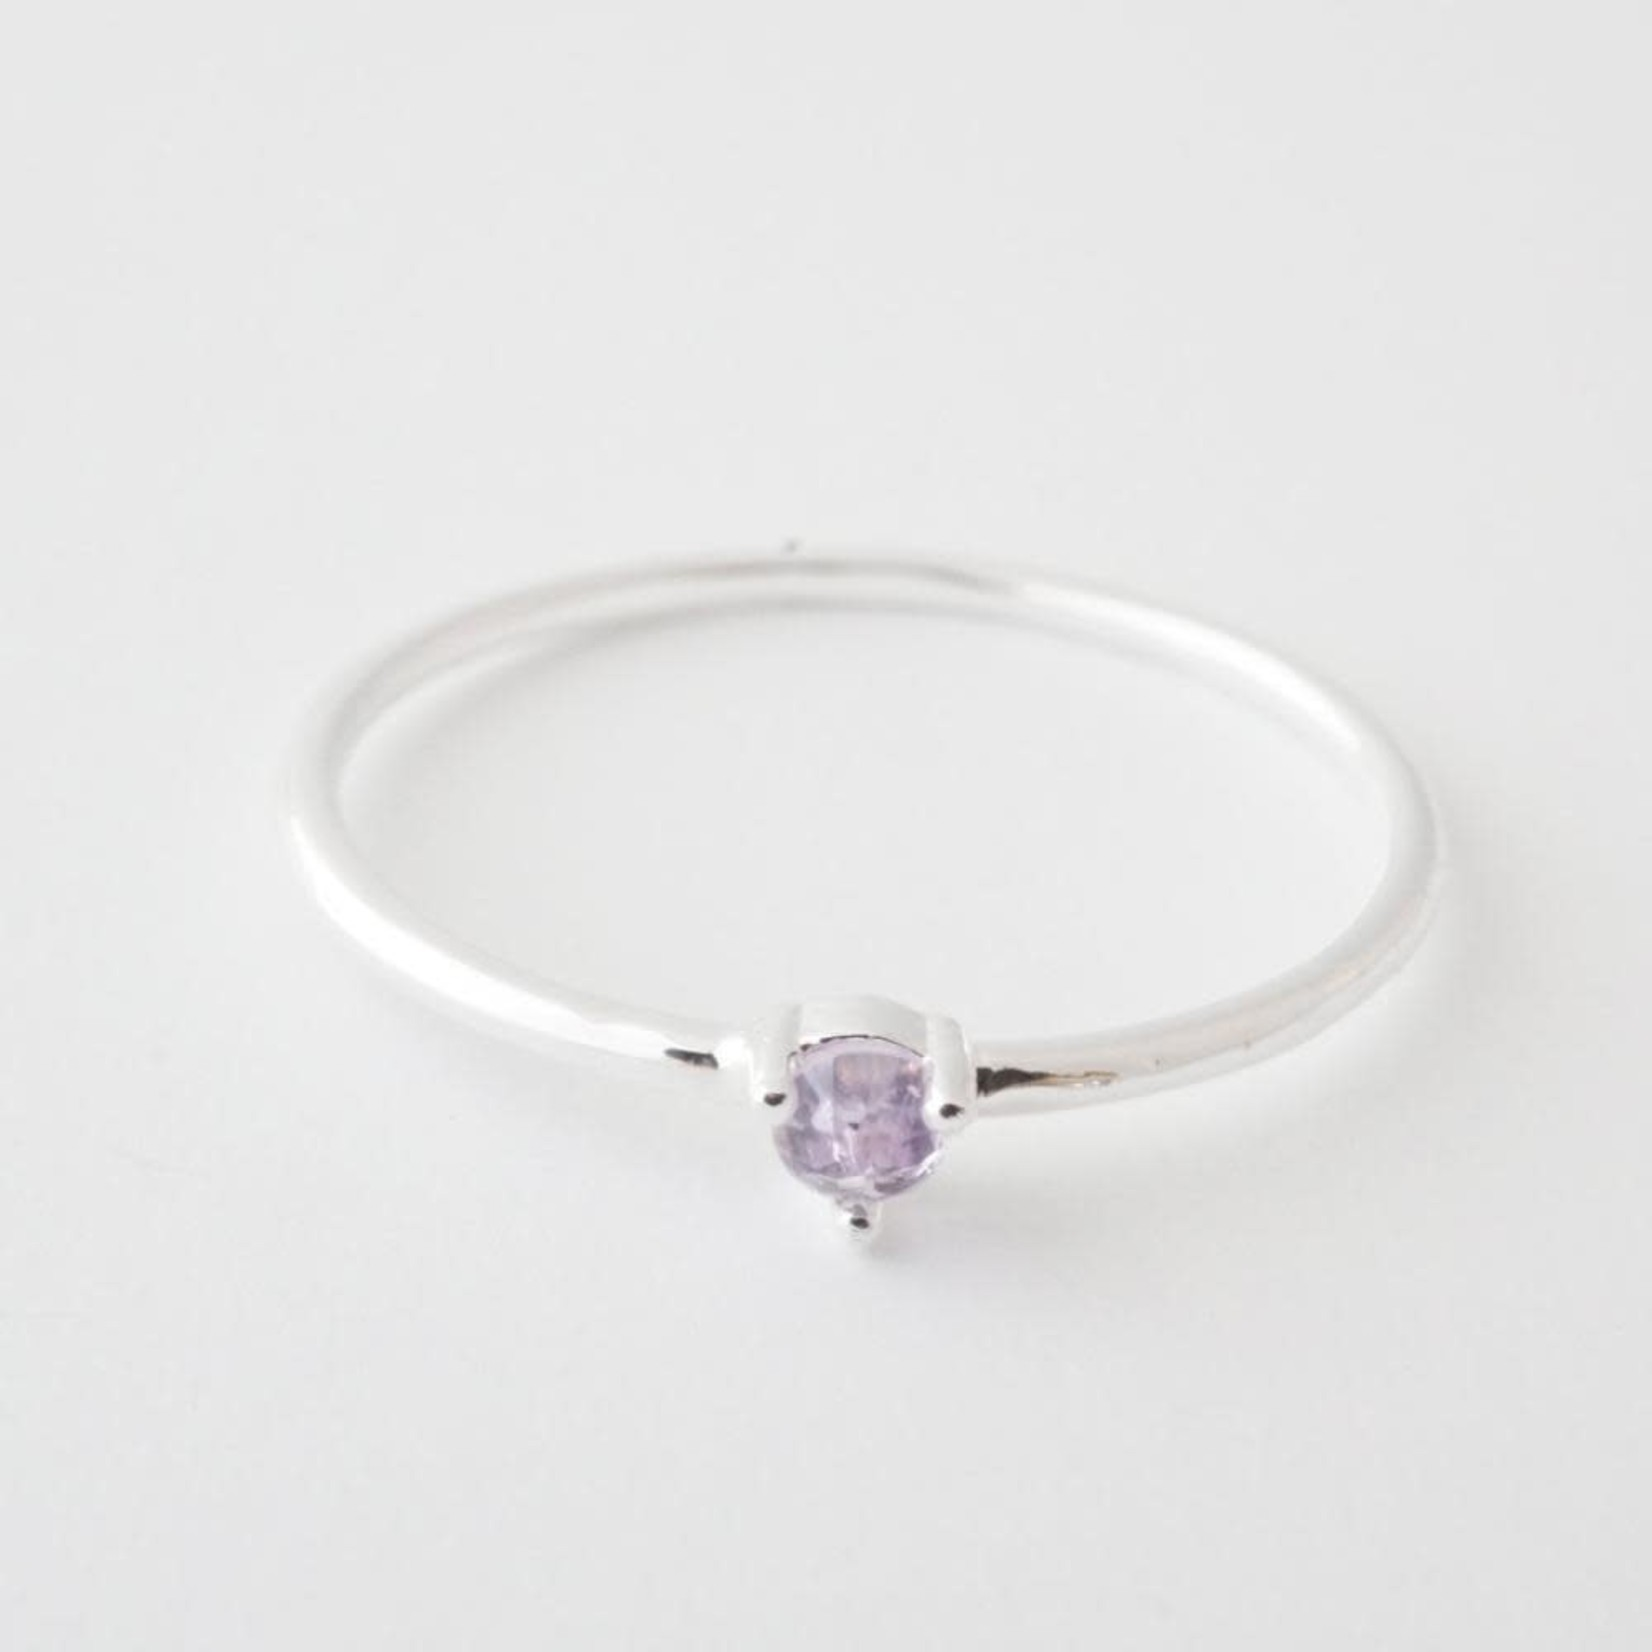 Honeycat Jewelry Honeycat Solitaire Ring AMETHYST Silver